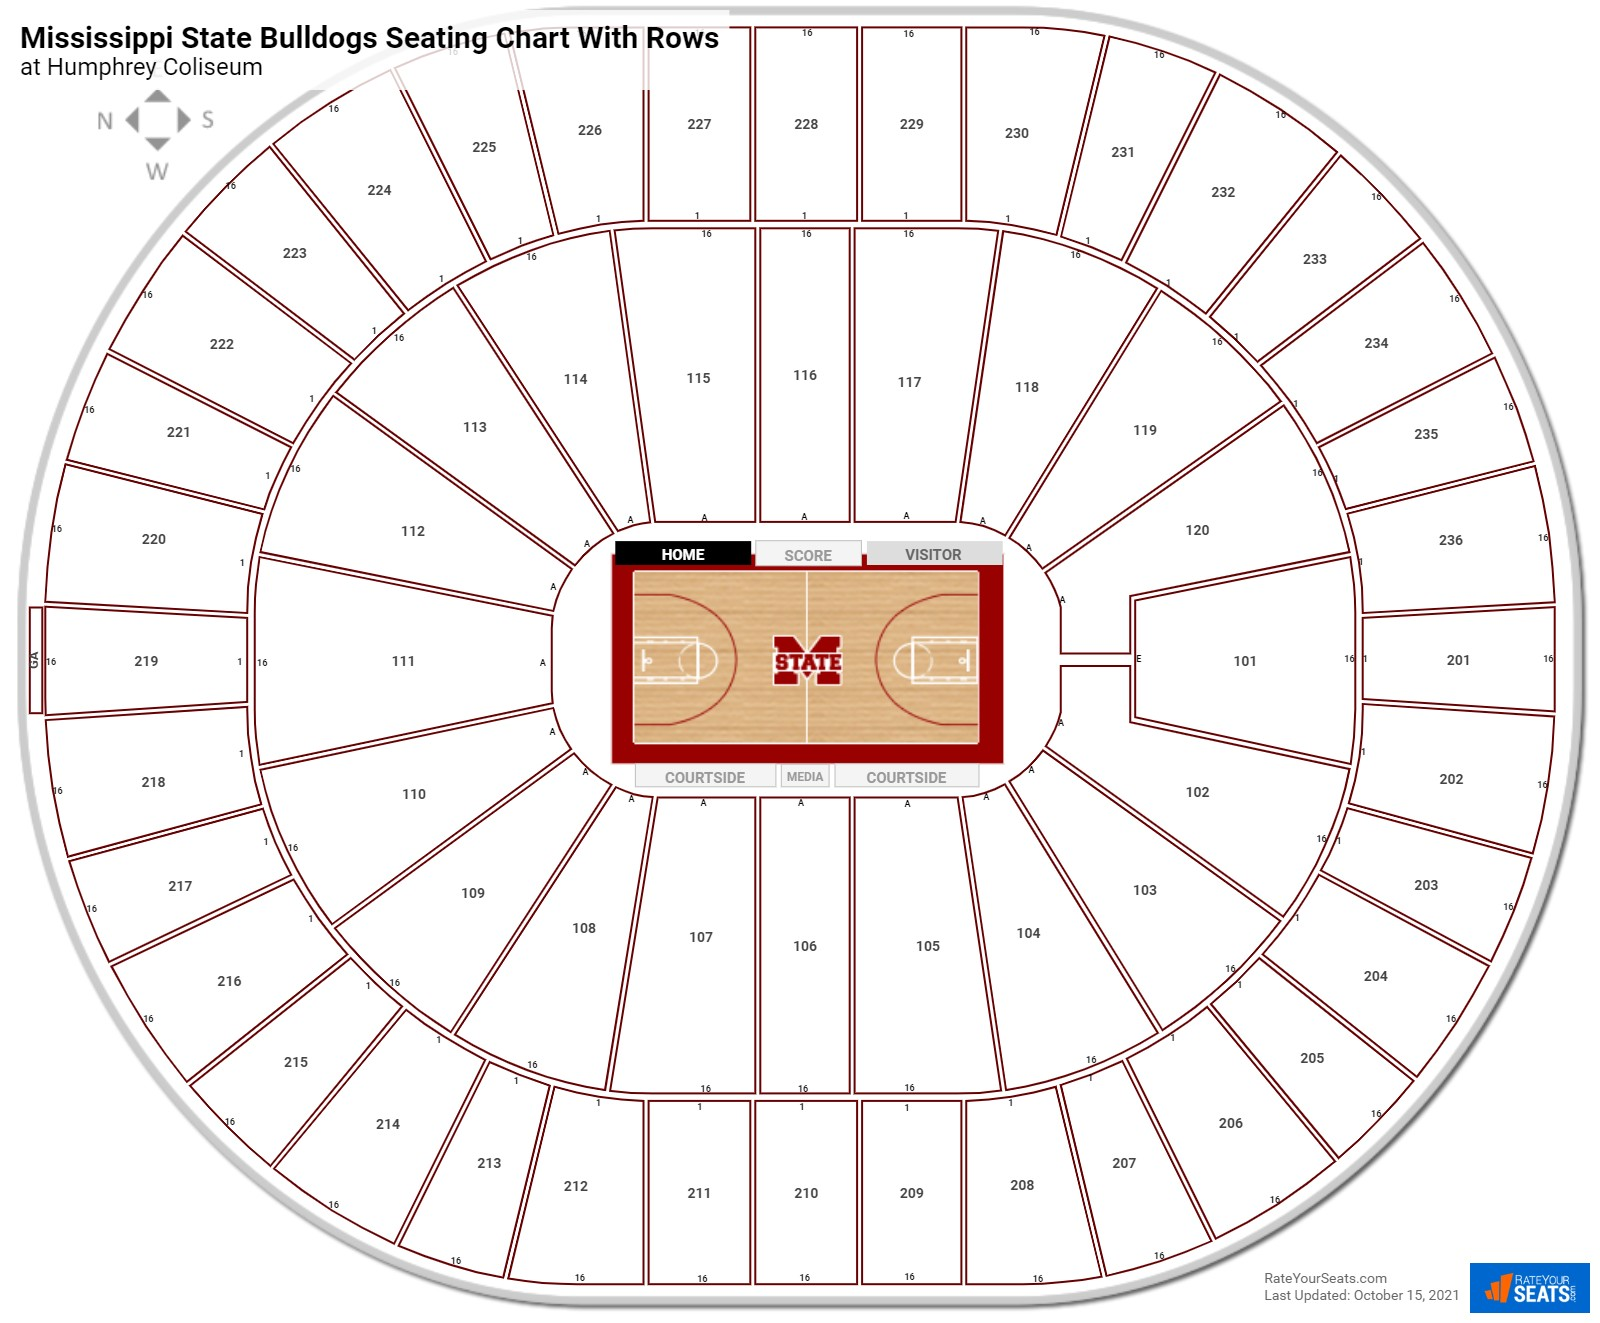 Humphrey Coliseum seating chart with rows